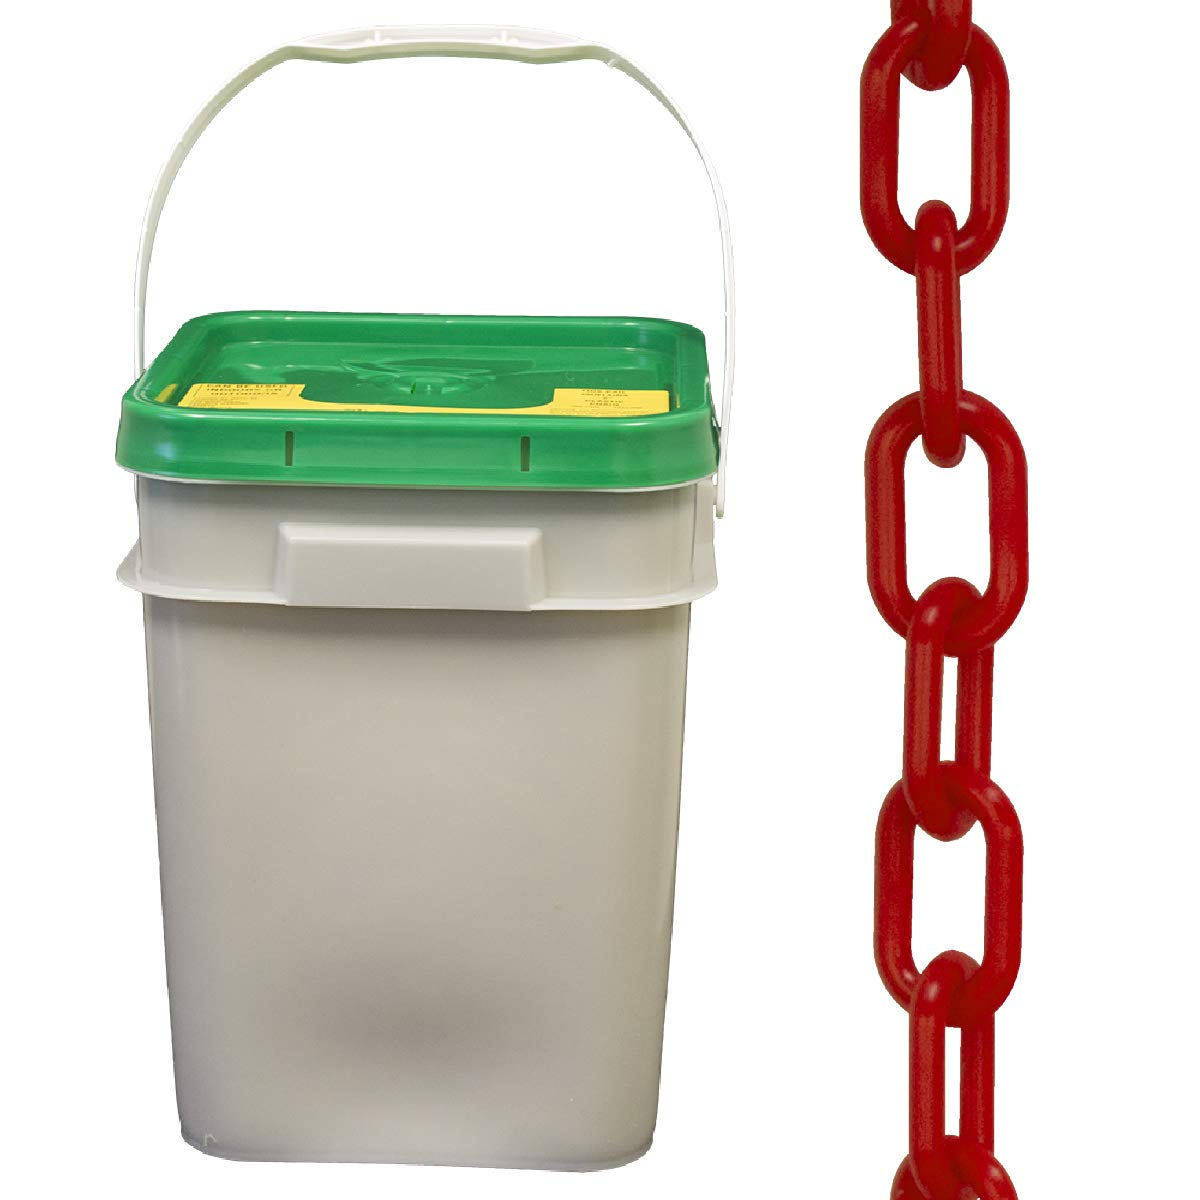 Chain Plastic Barrier Chain Pail 160-Foot Length Mr 50005-P 2-Inch Link Diameter Red